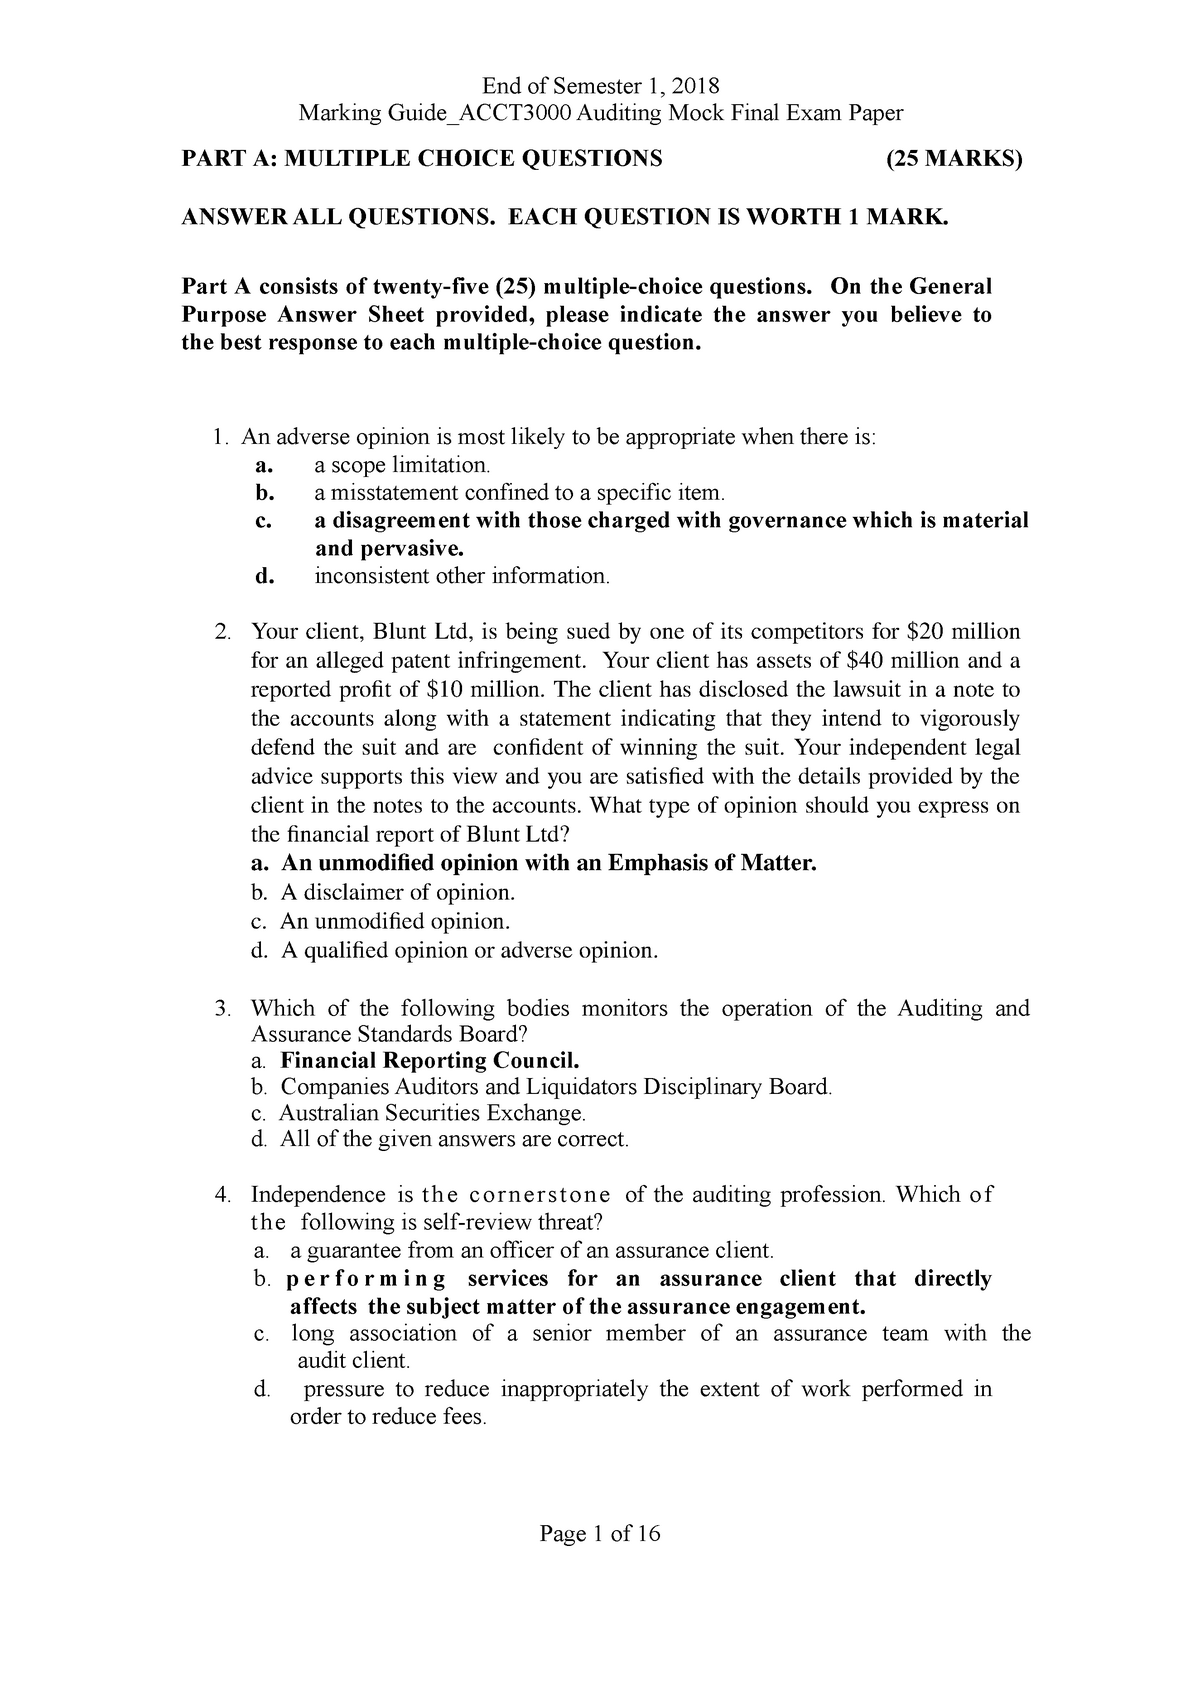 ACCT3000 Auditing Marking Guide Mock Final Exam Paper